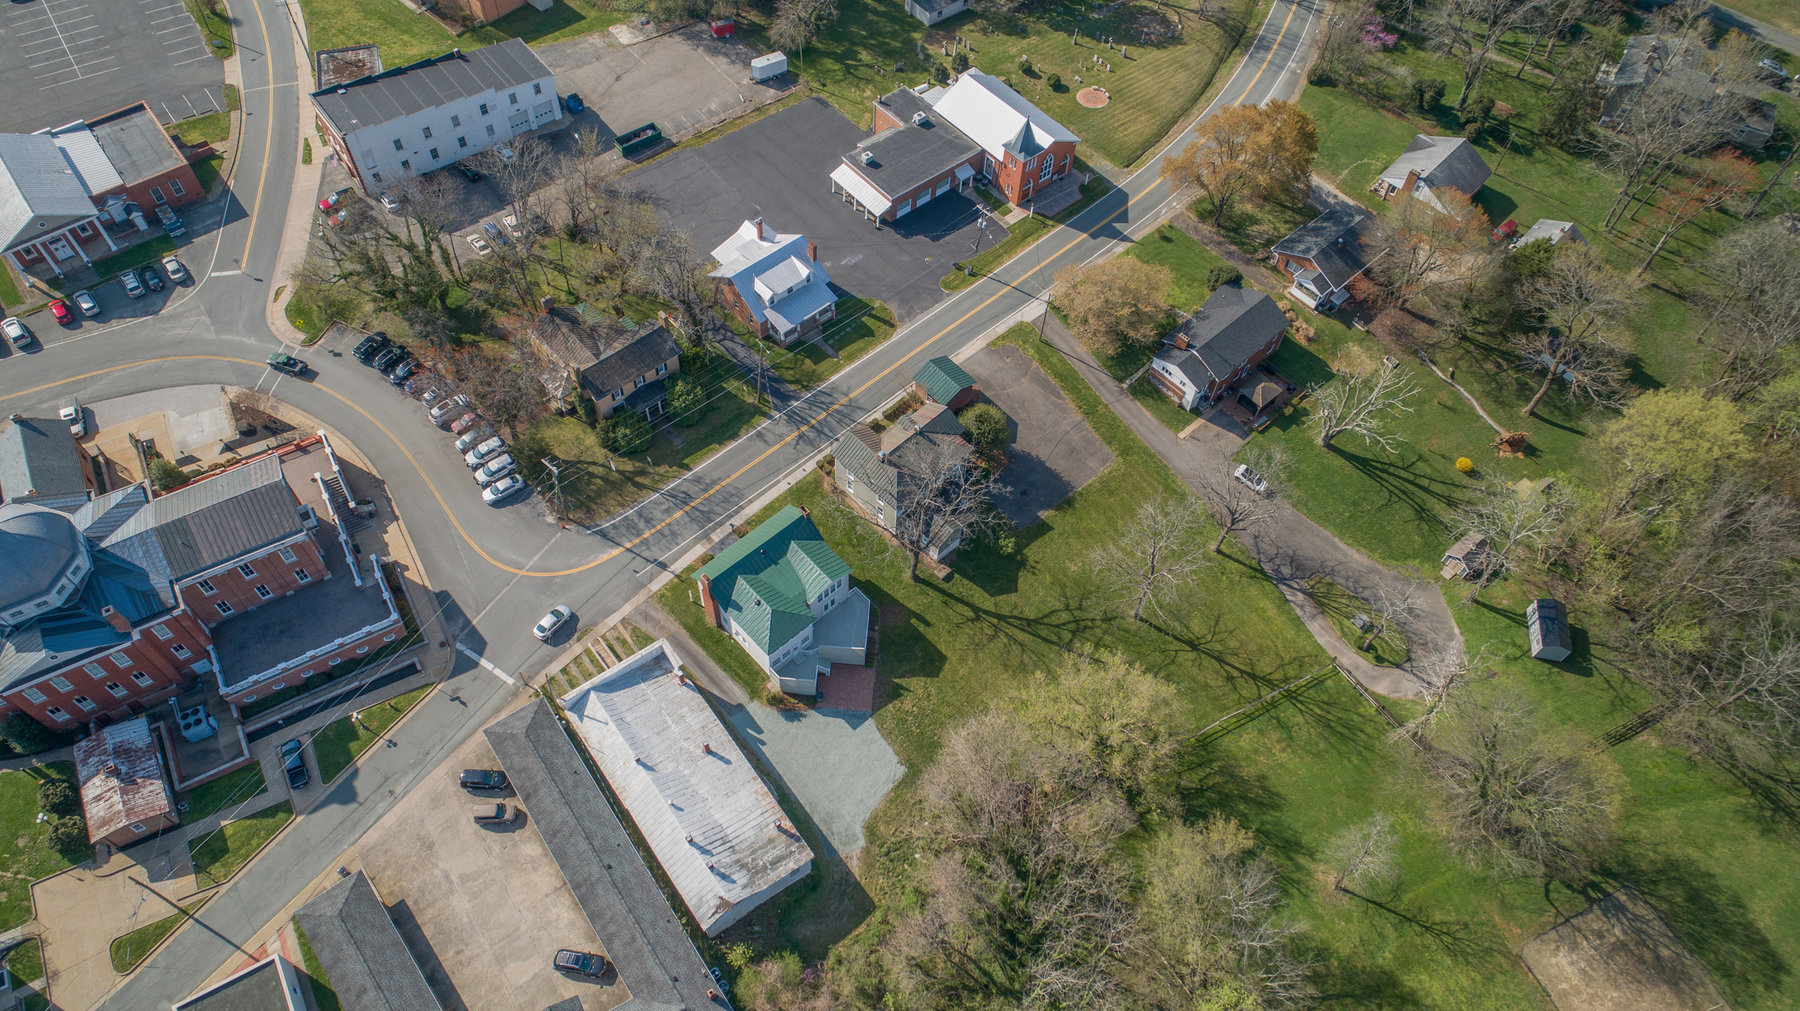 Image for 8 Room/2 BA Home/Office Building (Circa 1859) on .277 +/- Acres in Downtown Louisa, VA